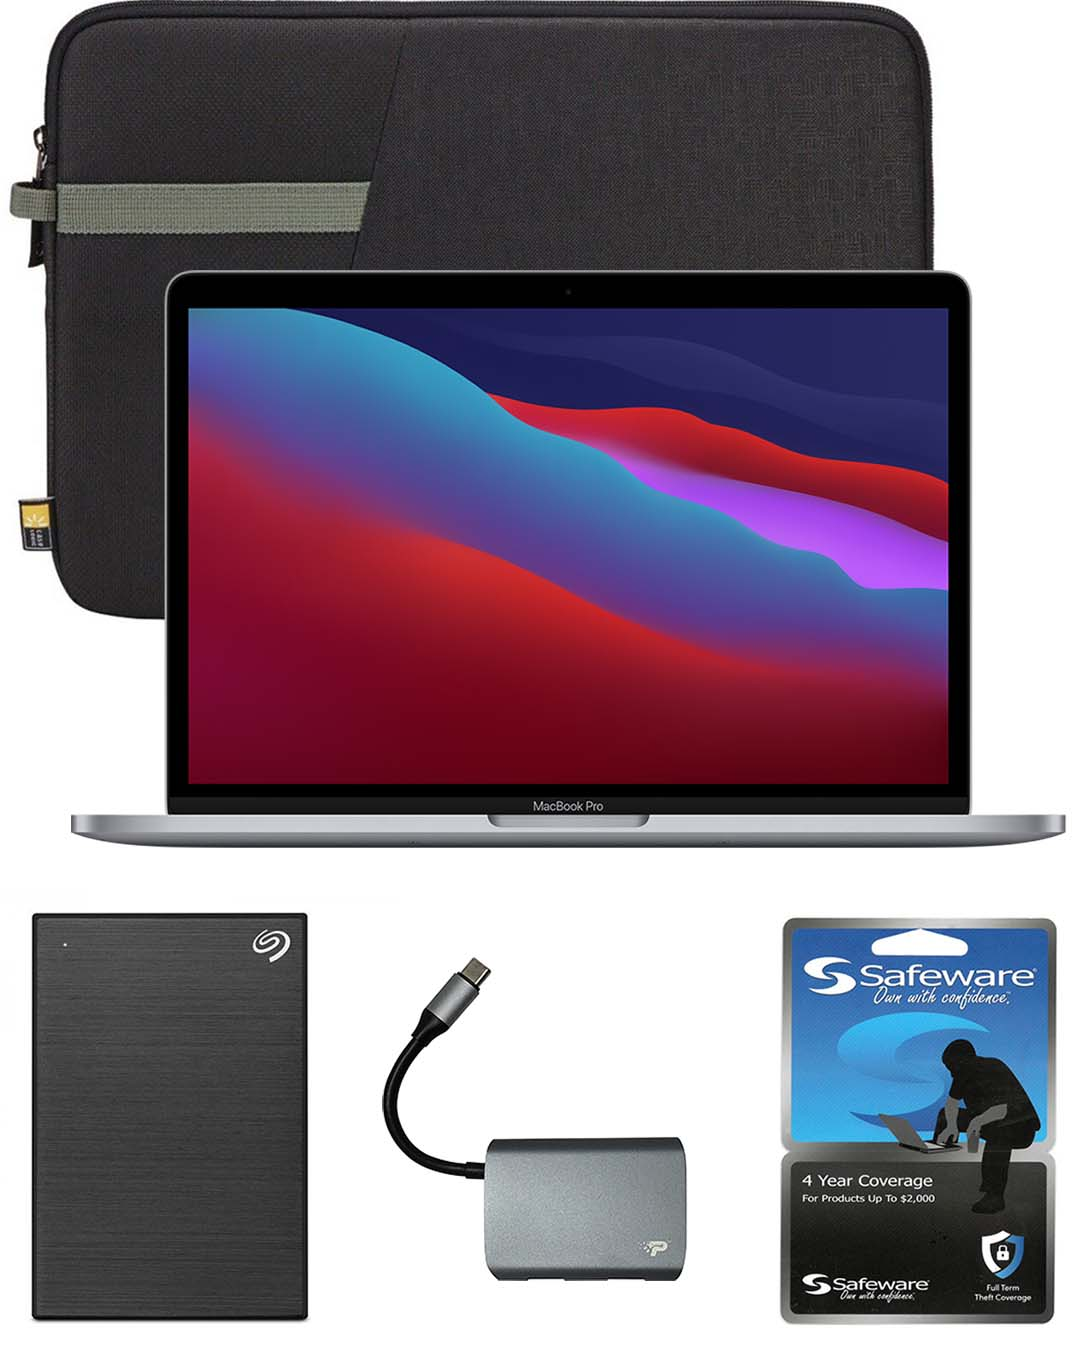 13-inch MacBook Air with Safeware 4 year warranty, 13-inch protective sleeve, 1TB external hard drive and 3-port USB 3.0 hub